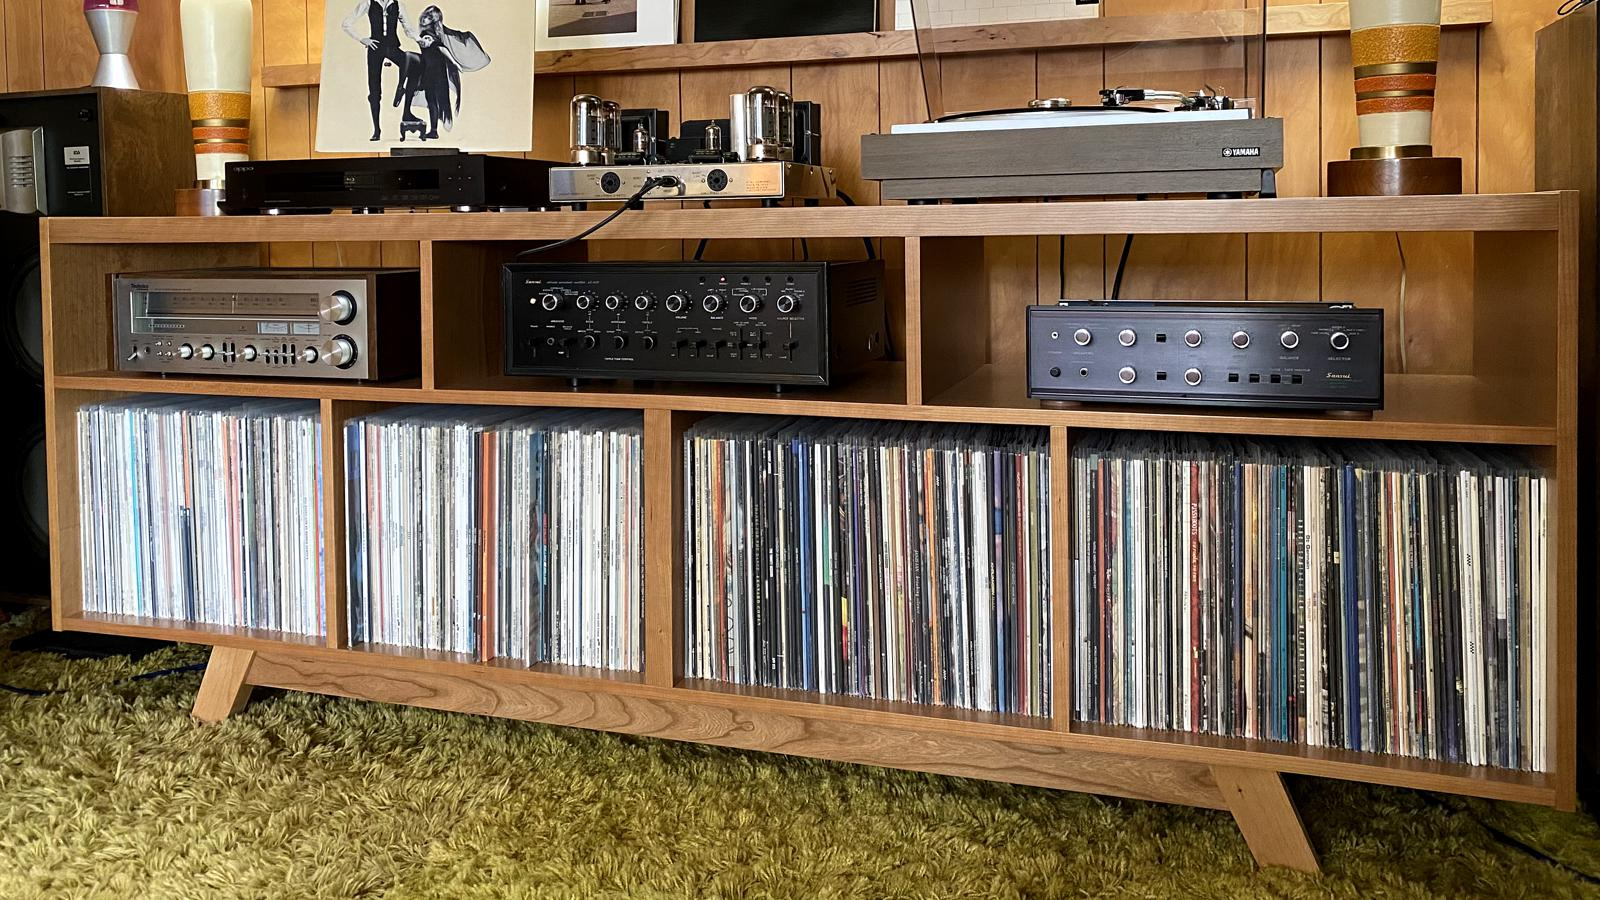 Stereo system with new shelving courtesy Audio Acoustic Engineering to house a growing vinyl collection